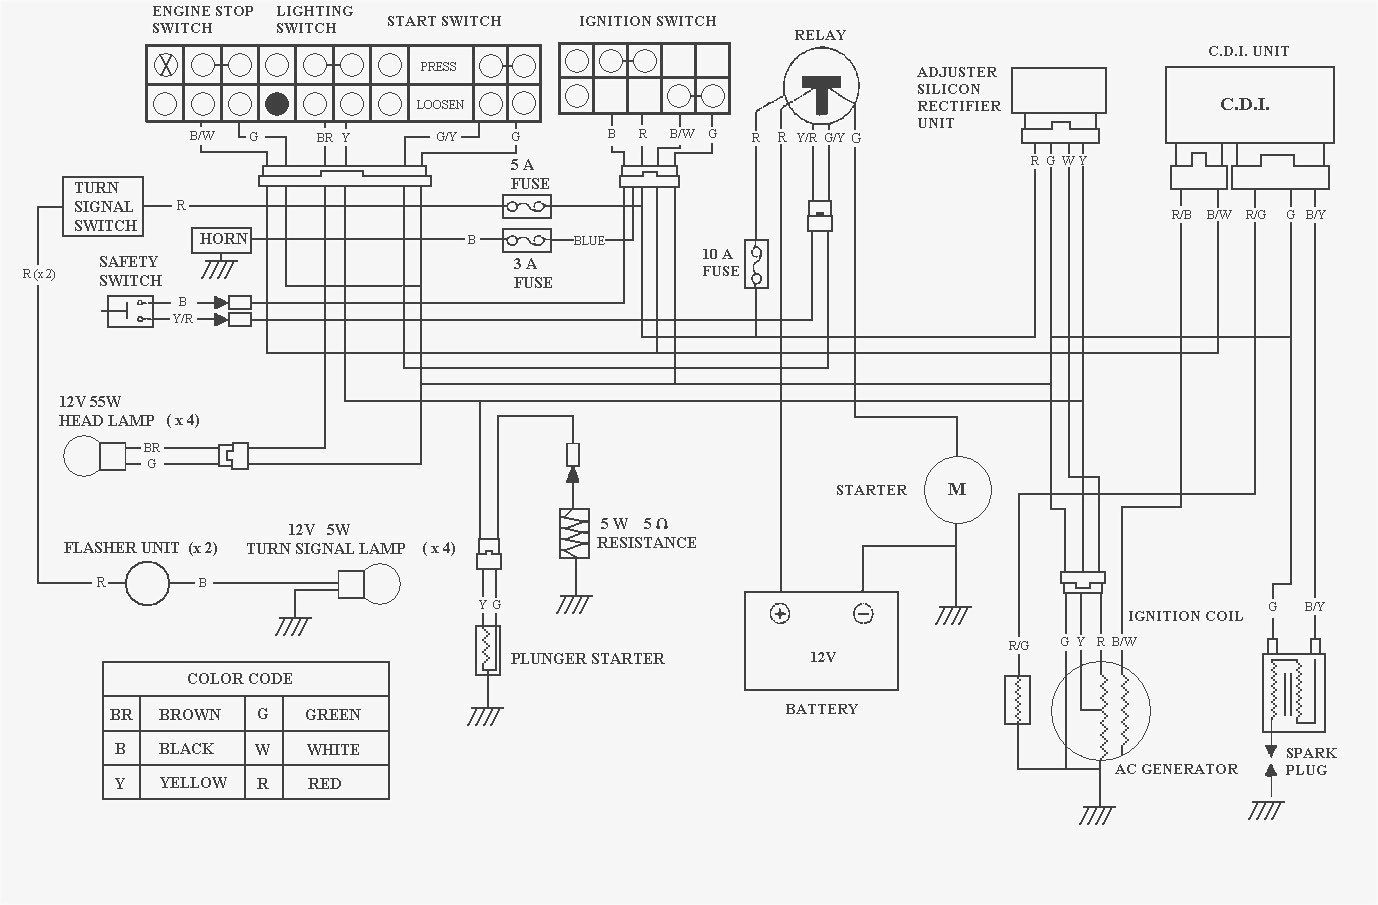 Mad Dog Wiring Diagram Trusted Wiring Diagrams \u2022 12V Solenoid Wiring  Mad Dog Solenoid Wiring Diagram